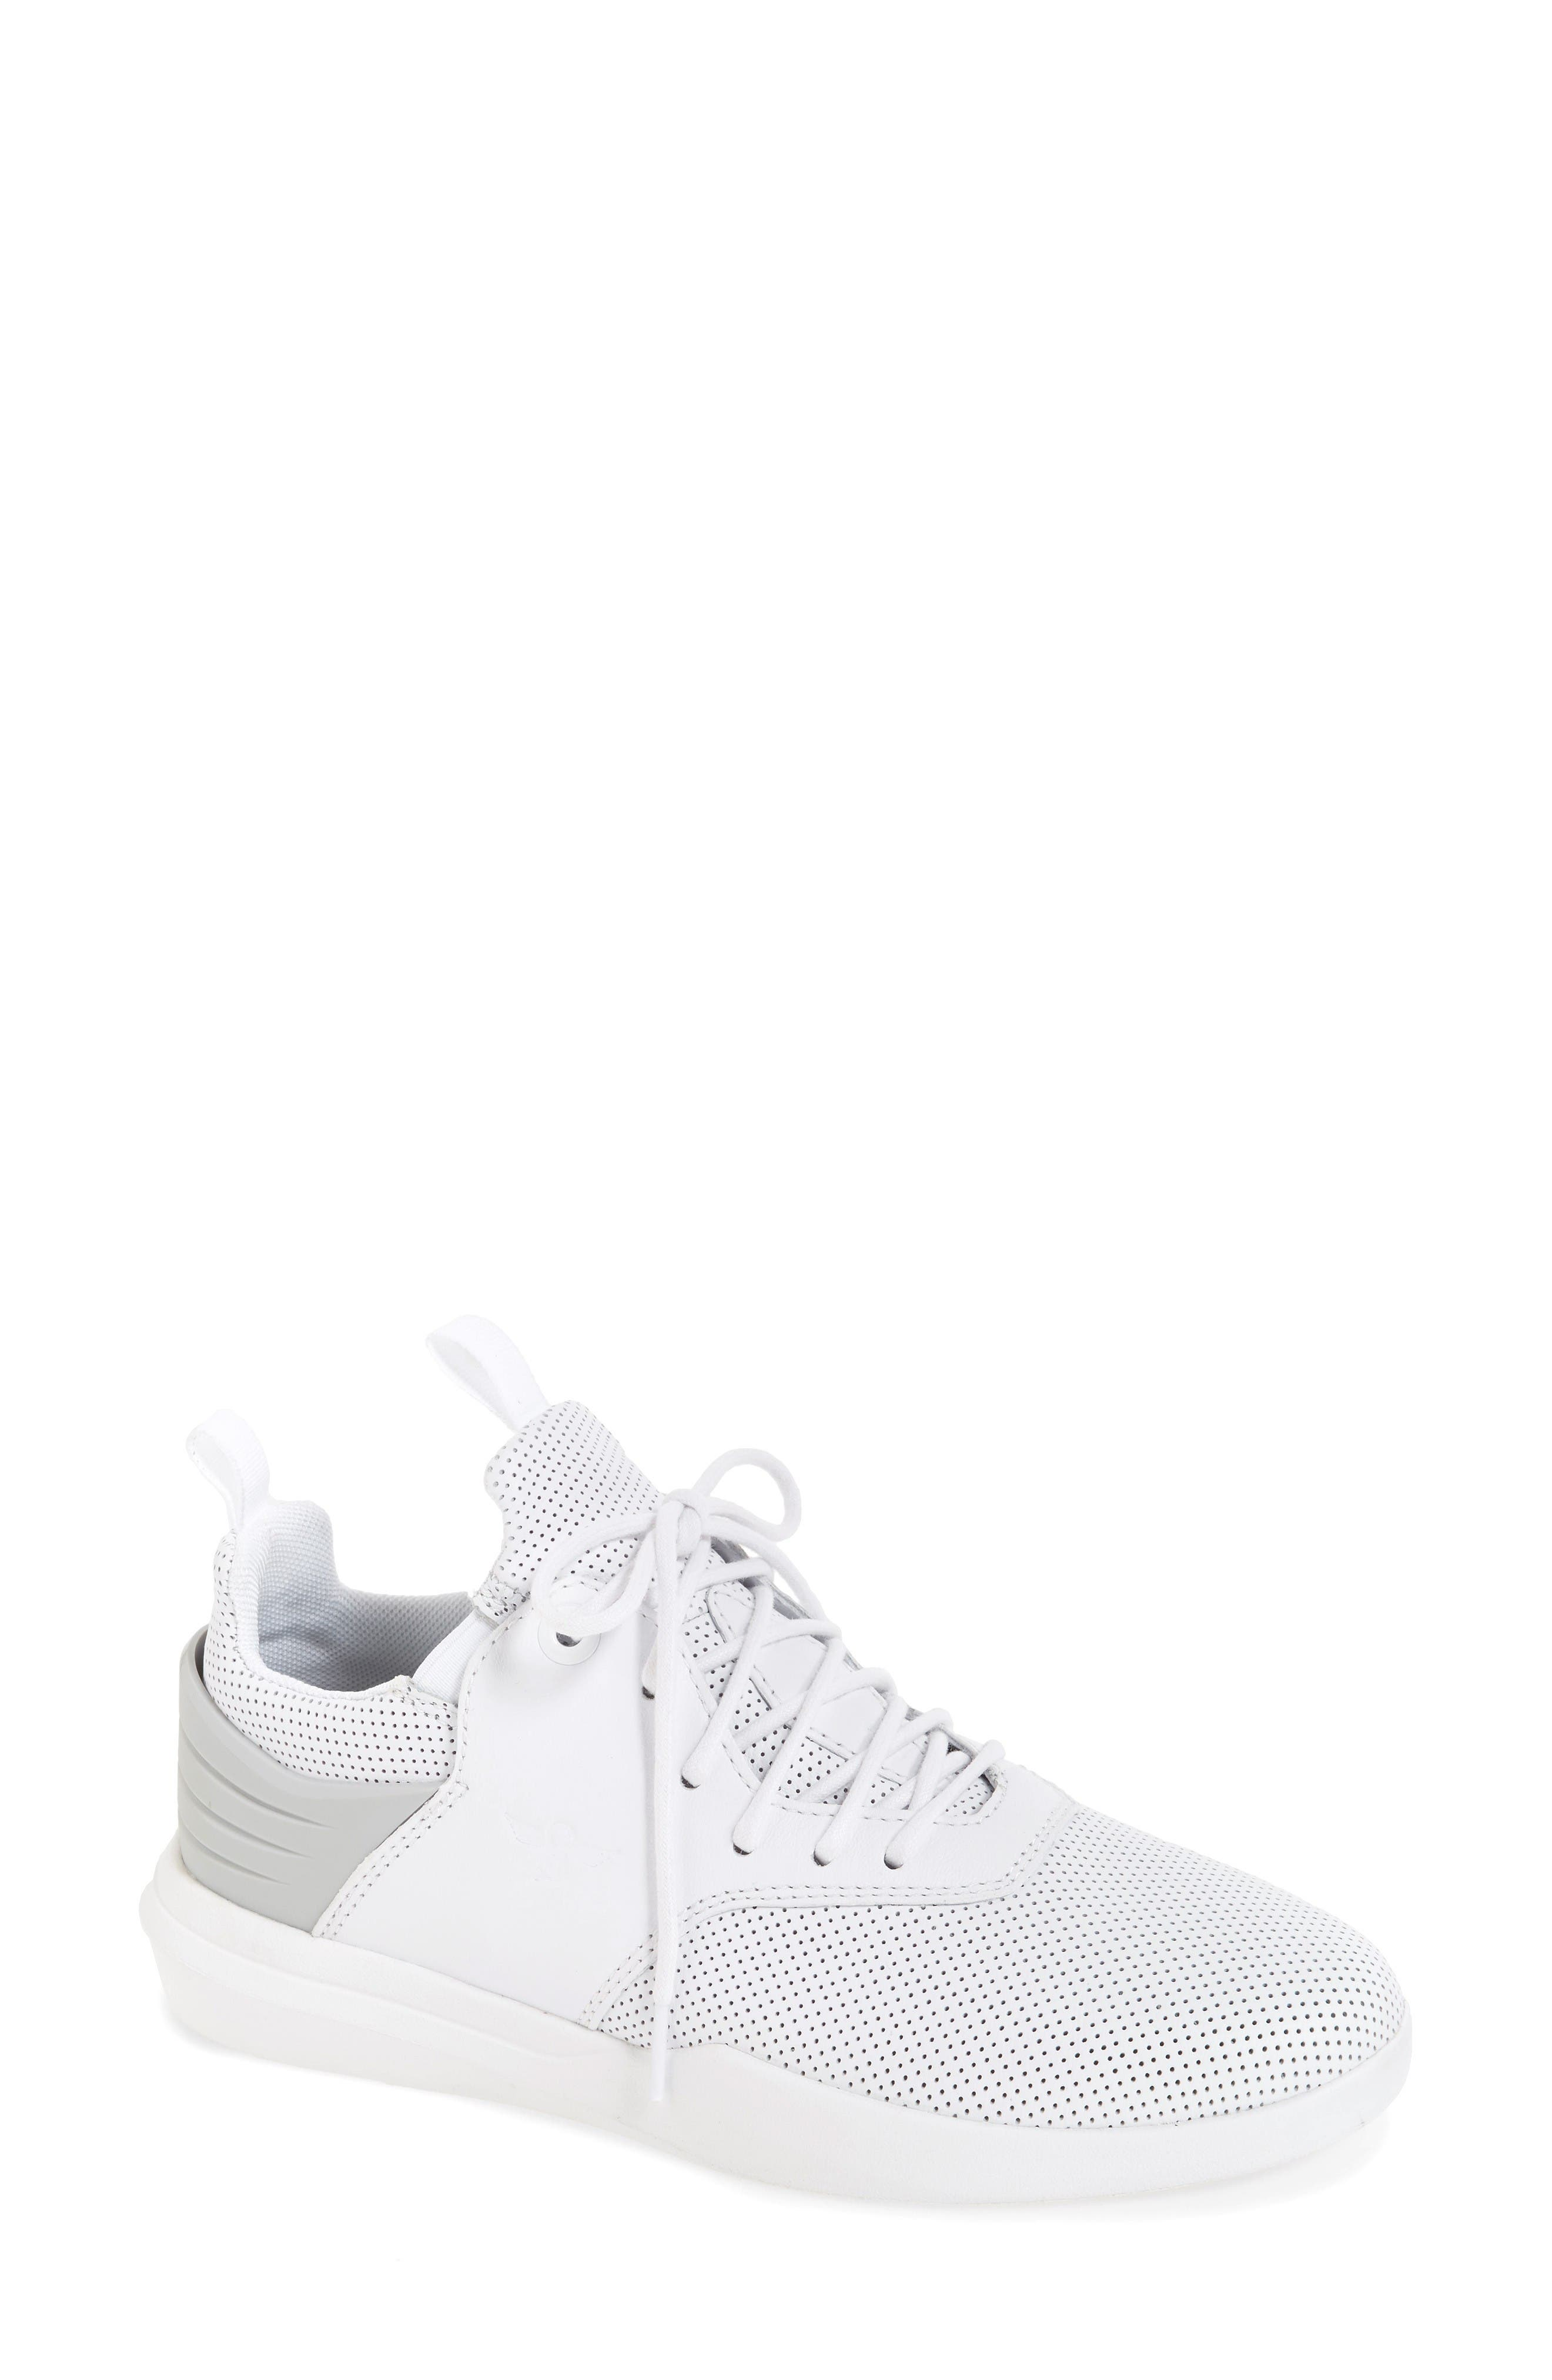 Alternate Image 1 Selected - Creative Recreation Deross Sneaker (Women)